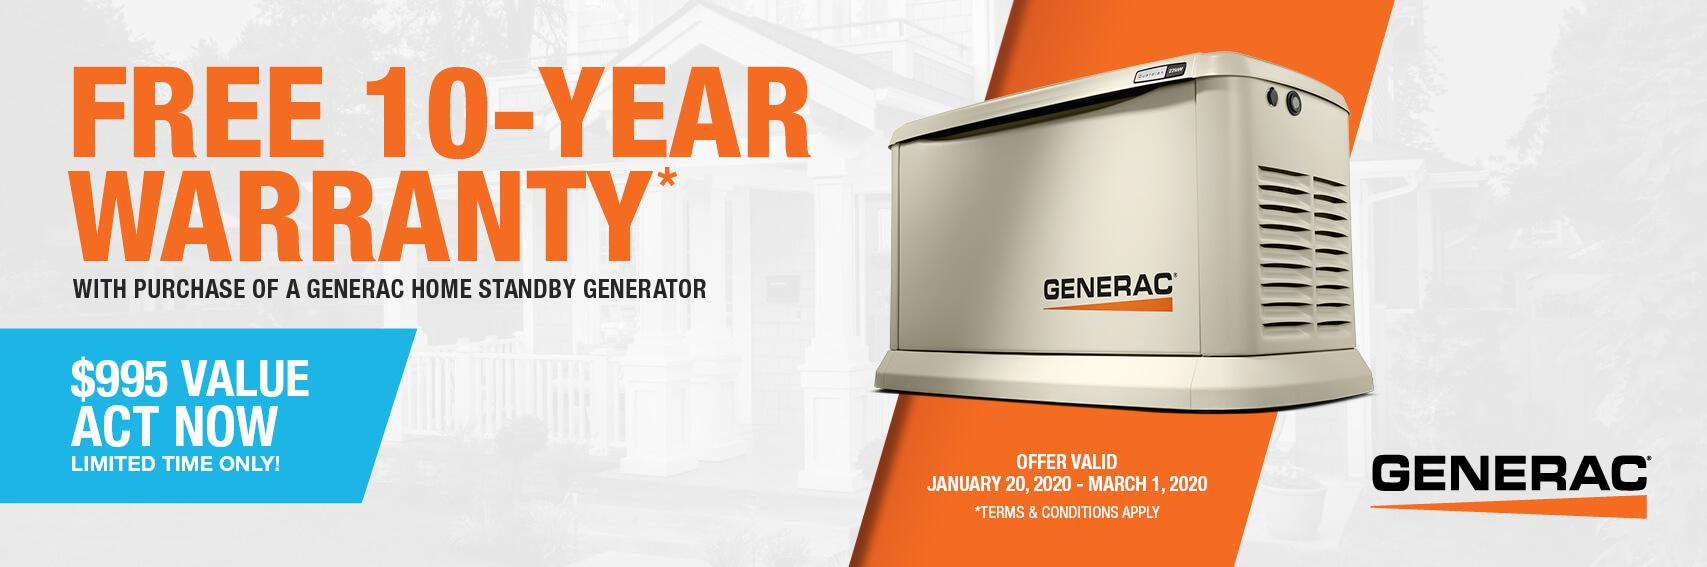 Homestandby Generator Deal | Warranty Offer | Generac Dealer | Panama City Beach, FL